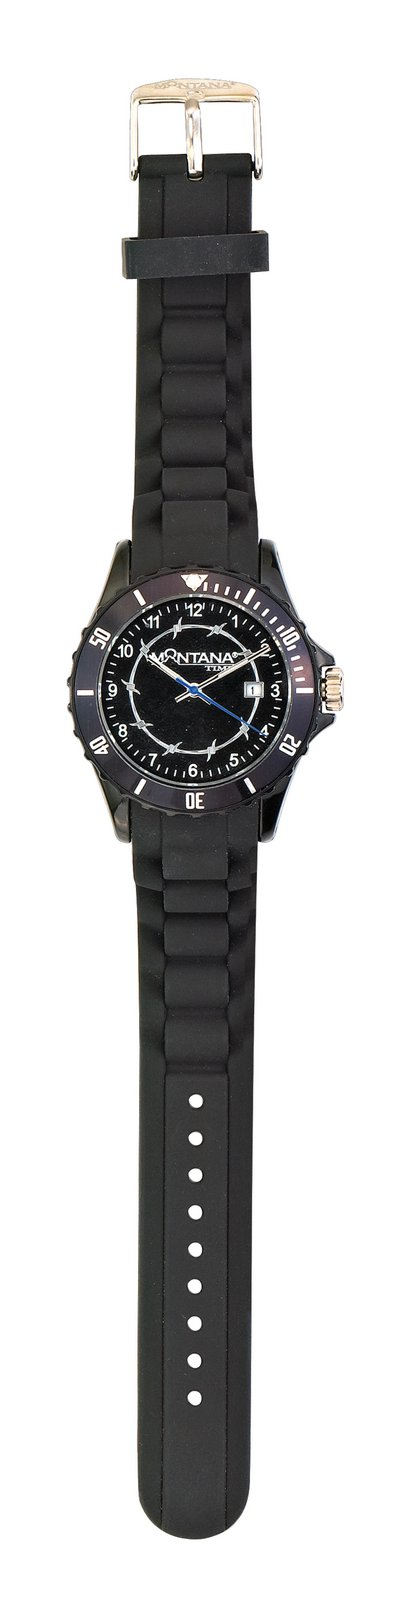 Montana Silversmiths Montana Midnight On The Range Sport Watch